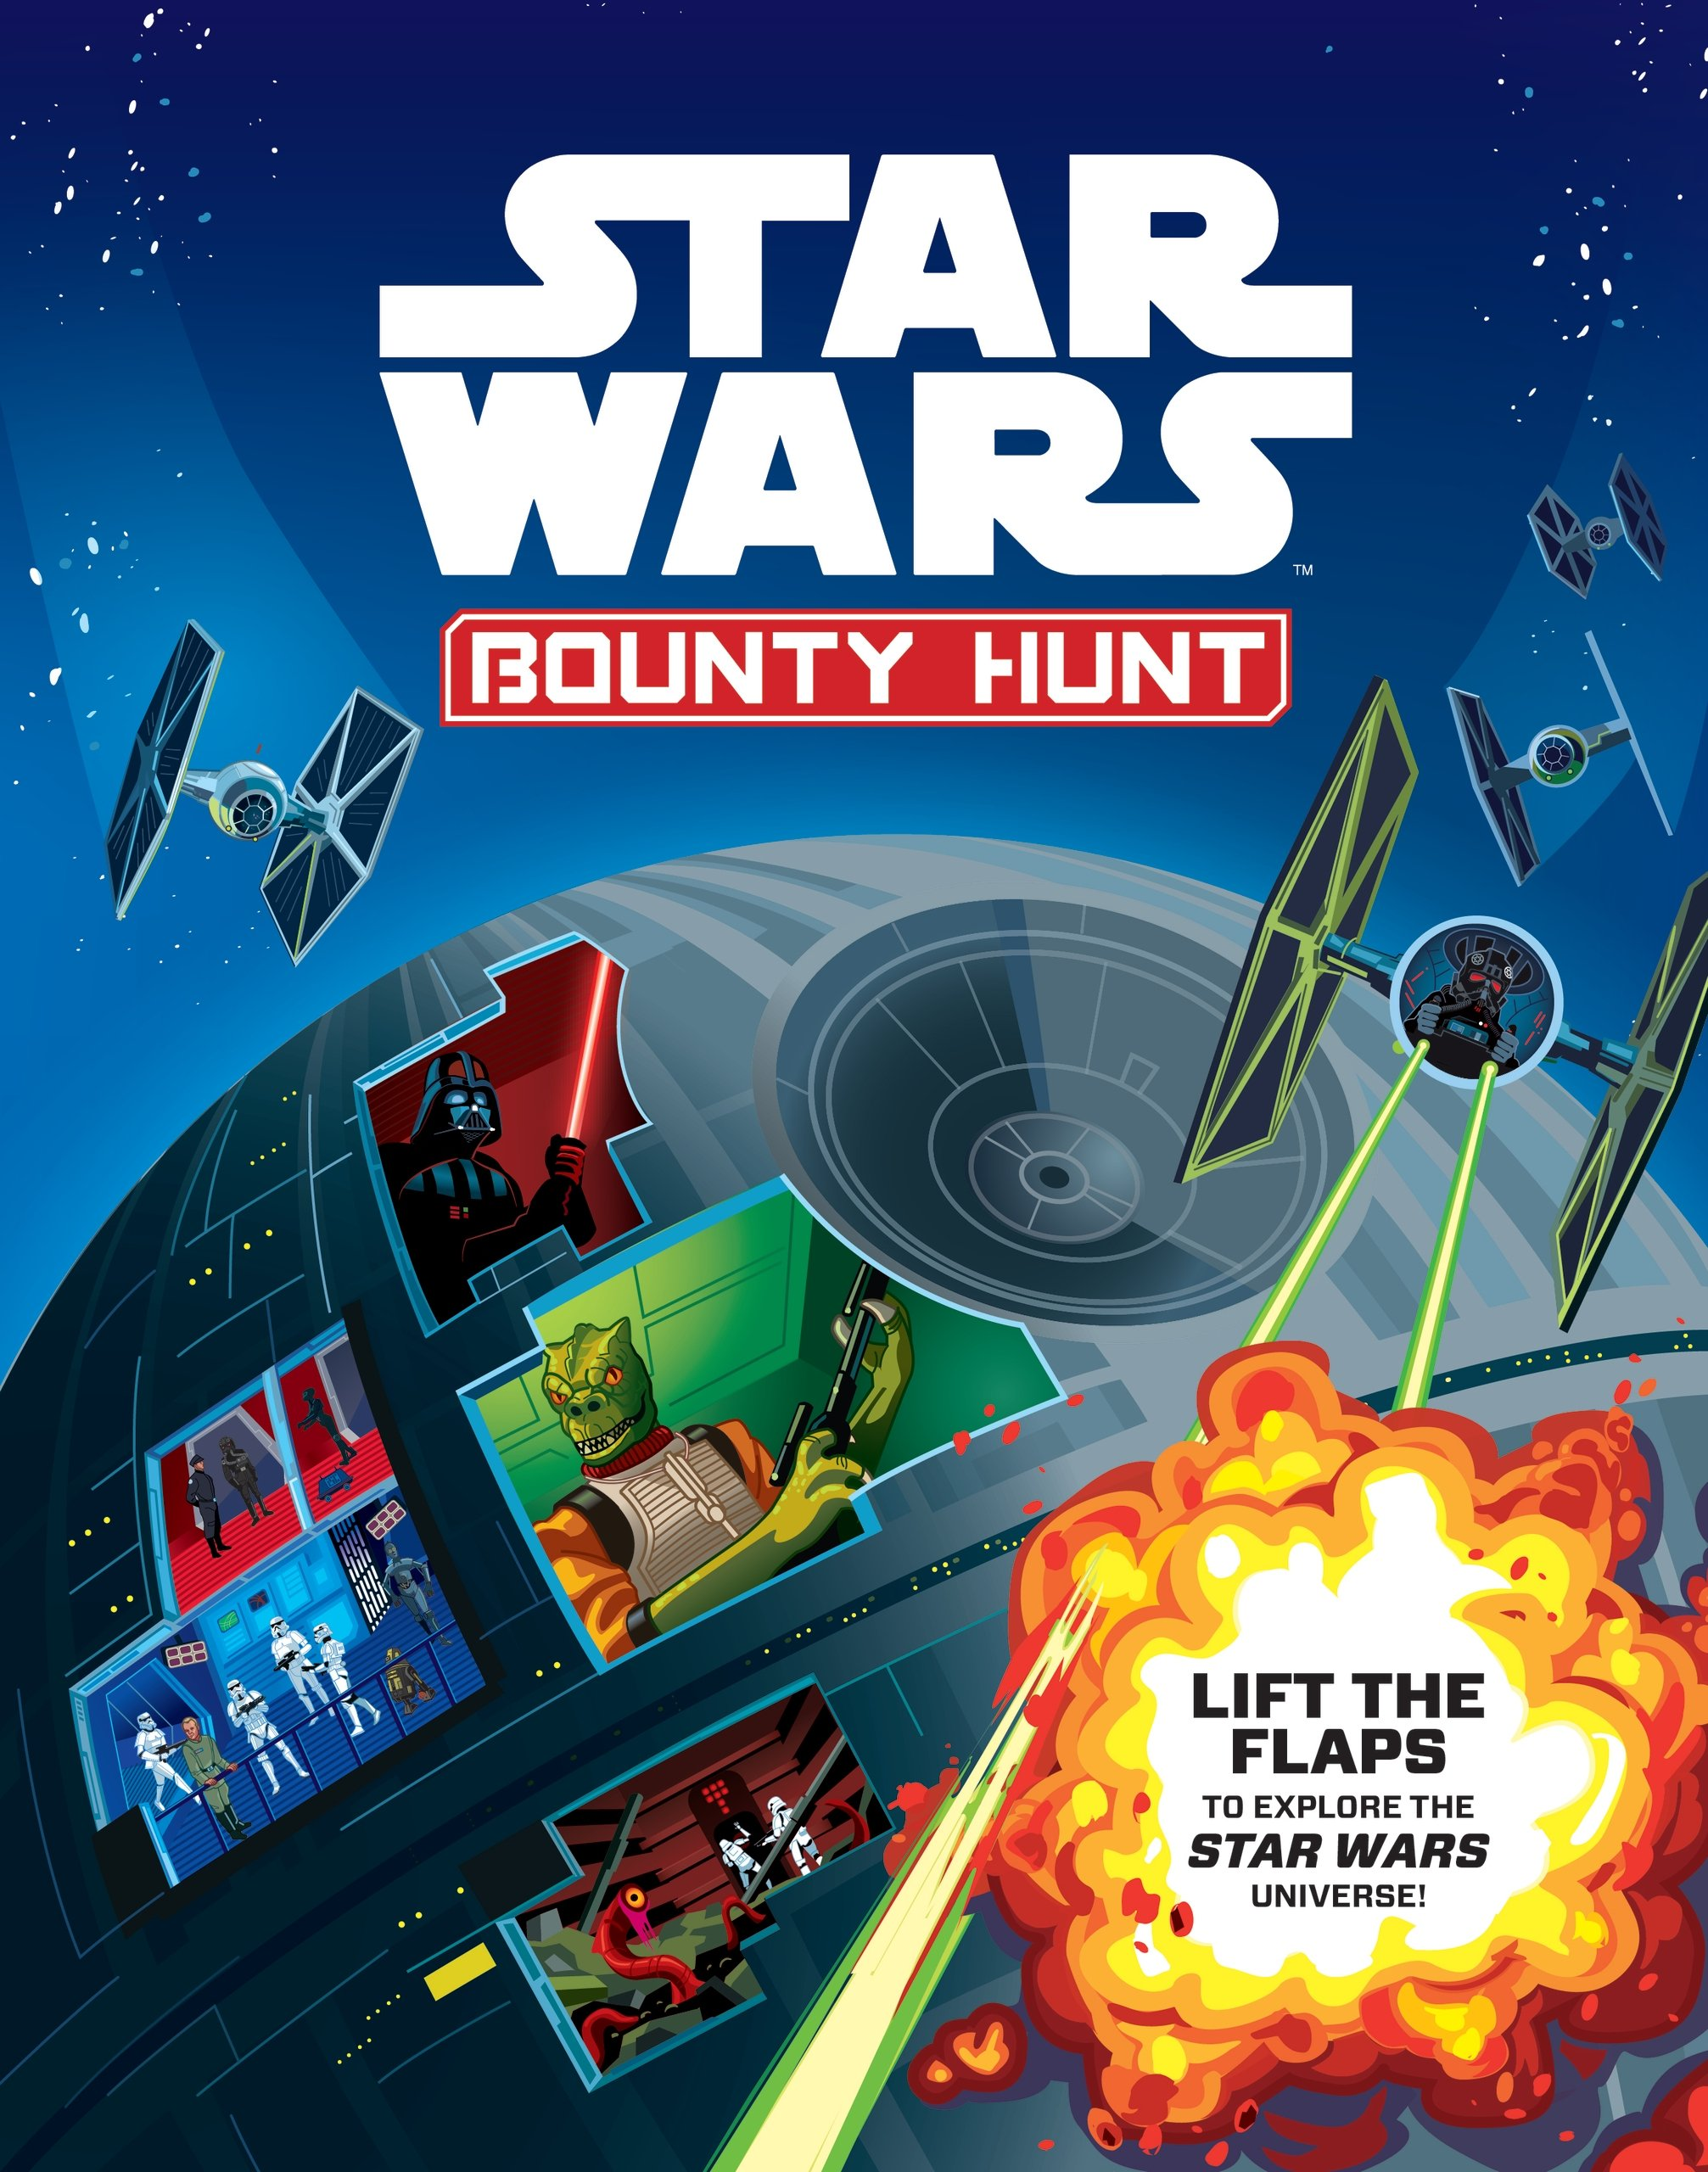 Star Wars: Bounty Hunt